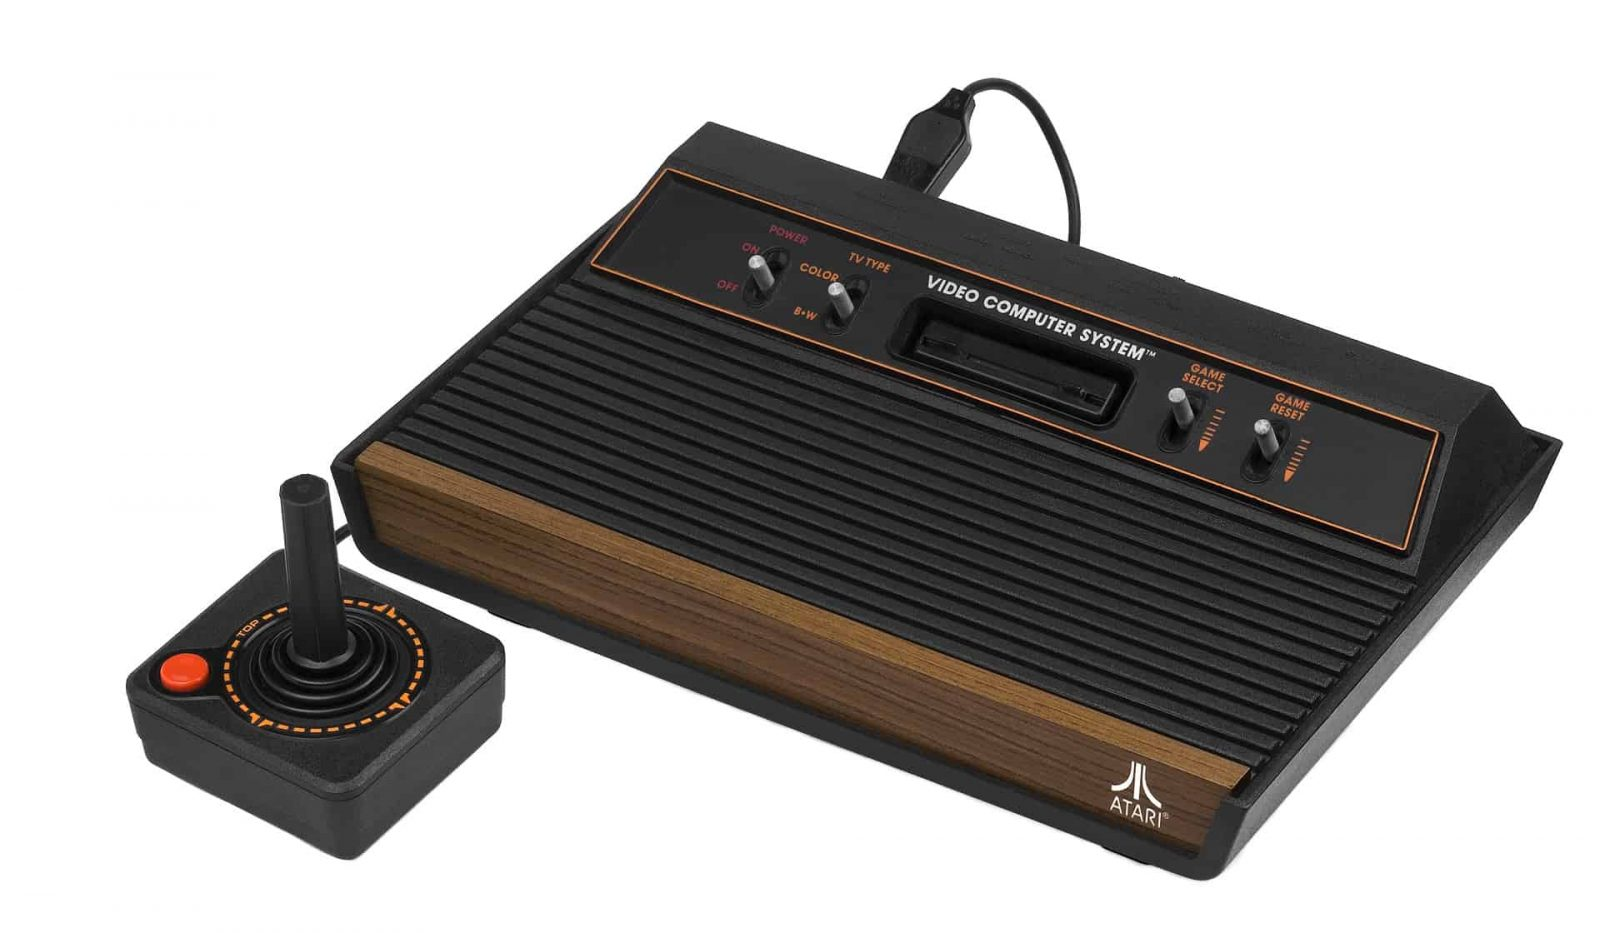 An image showing a retro Atari console with a single joystick style controller